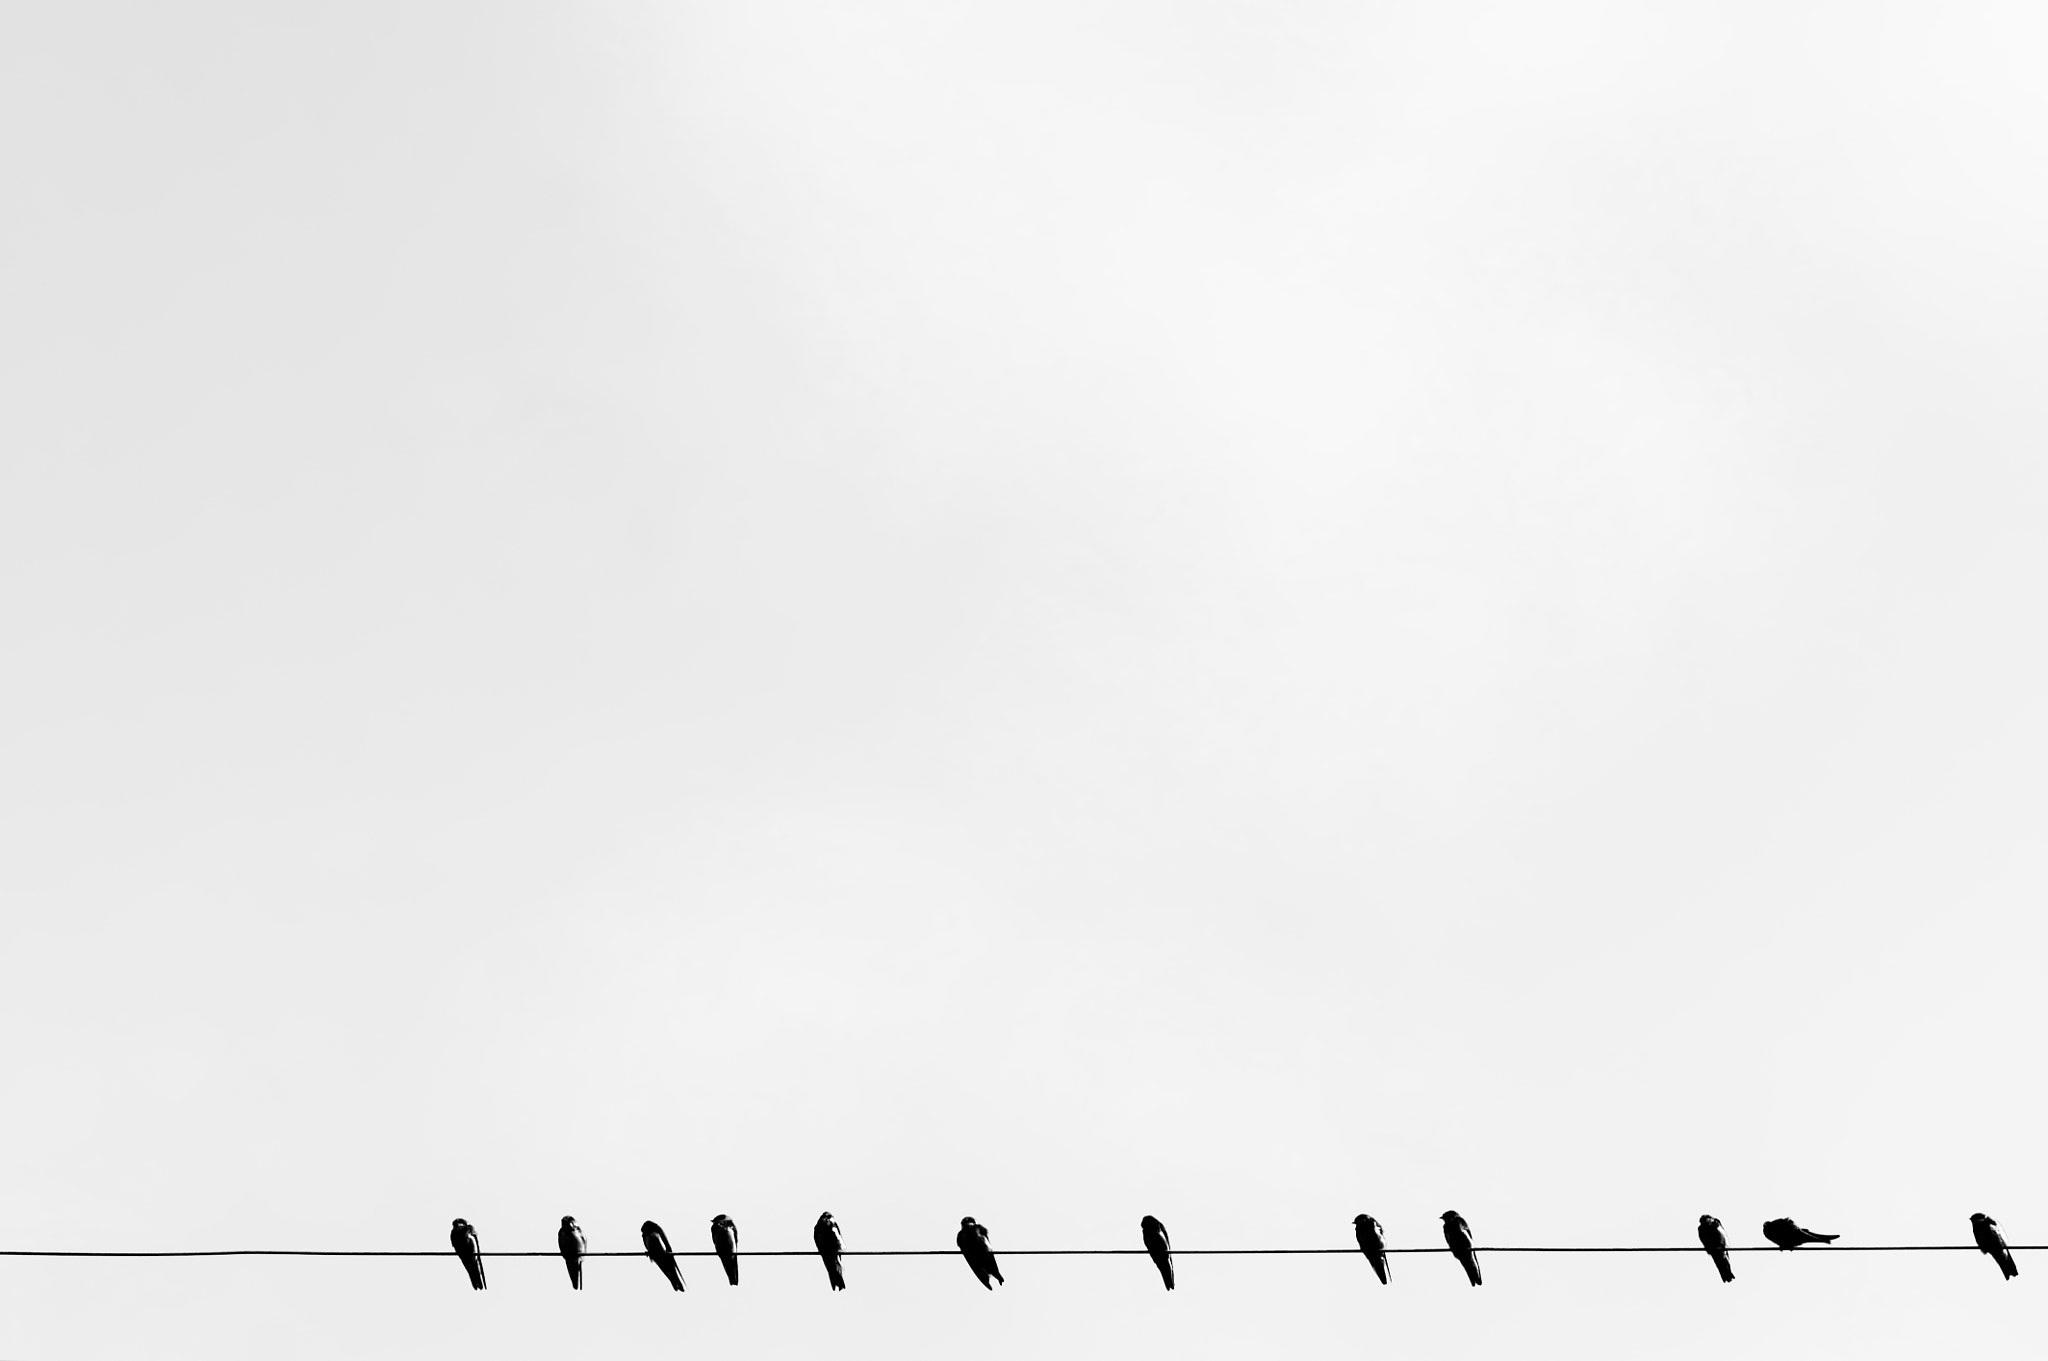 Photograph On The Line by Martijn Akse on 500px